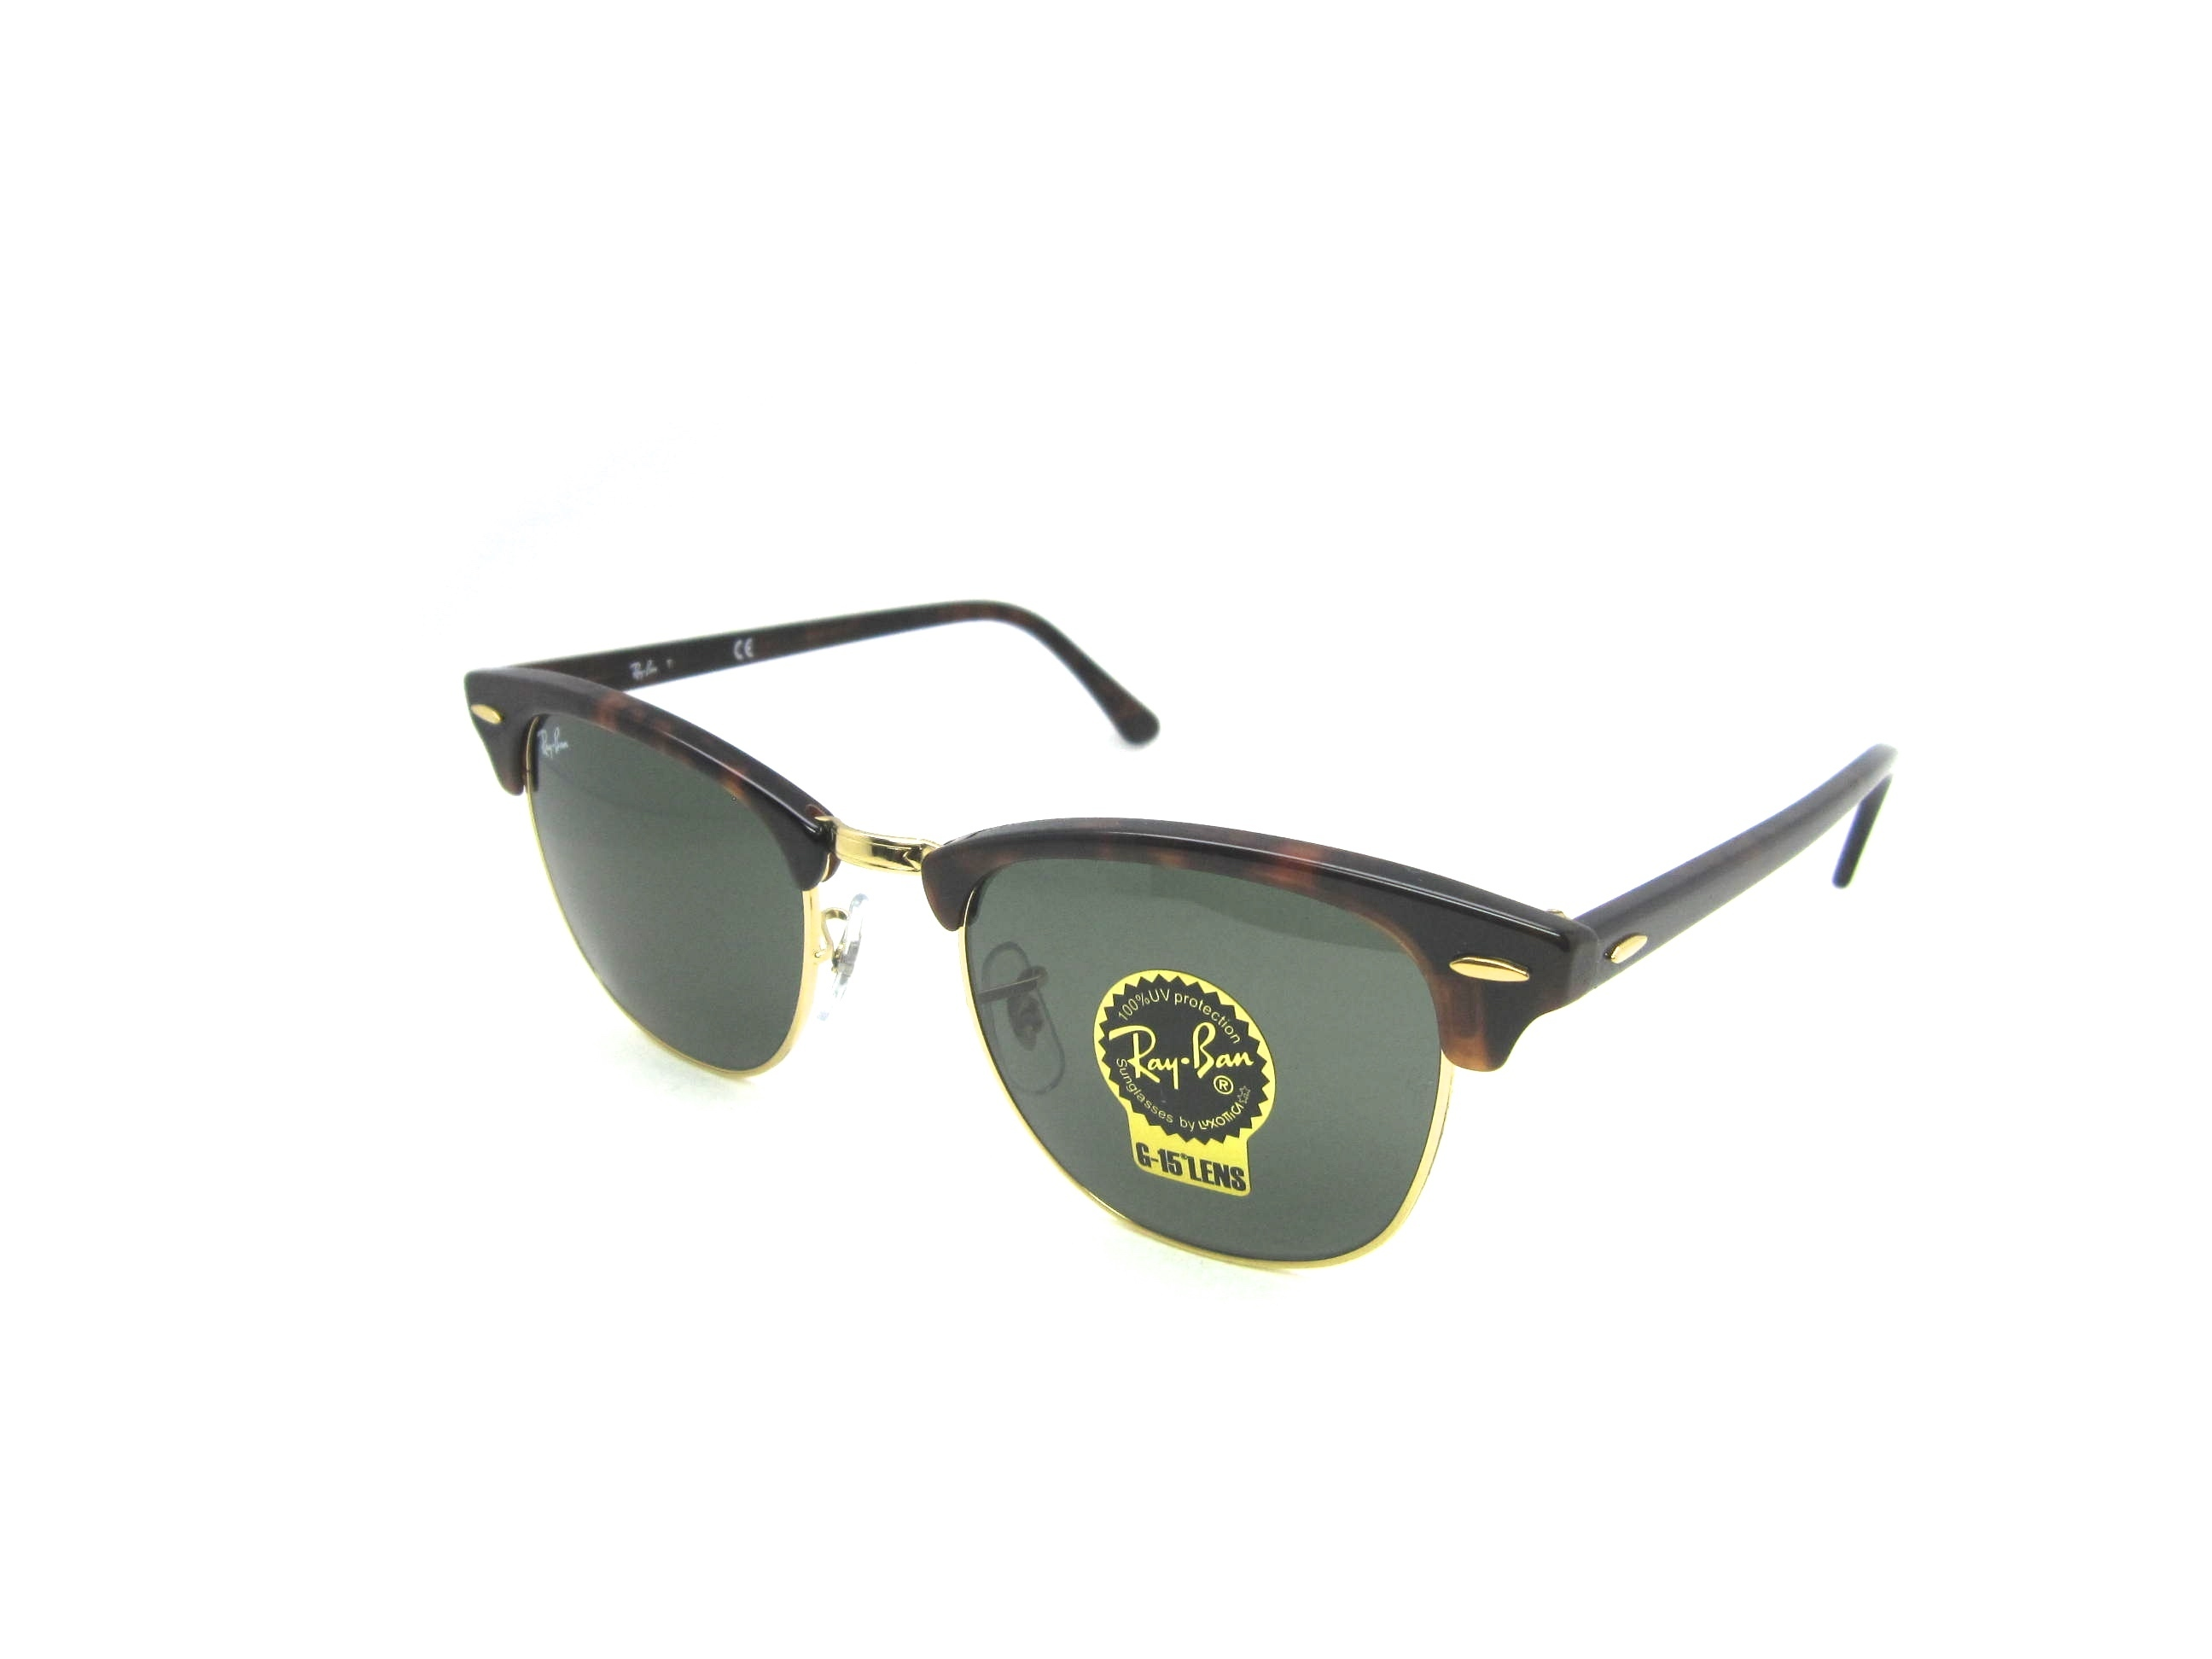 045d88fbb0 Ray Ban Clubmaster 0366 « Heritage Malta